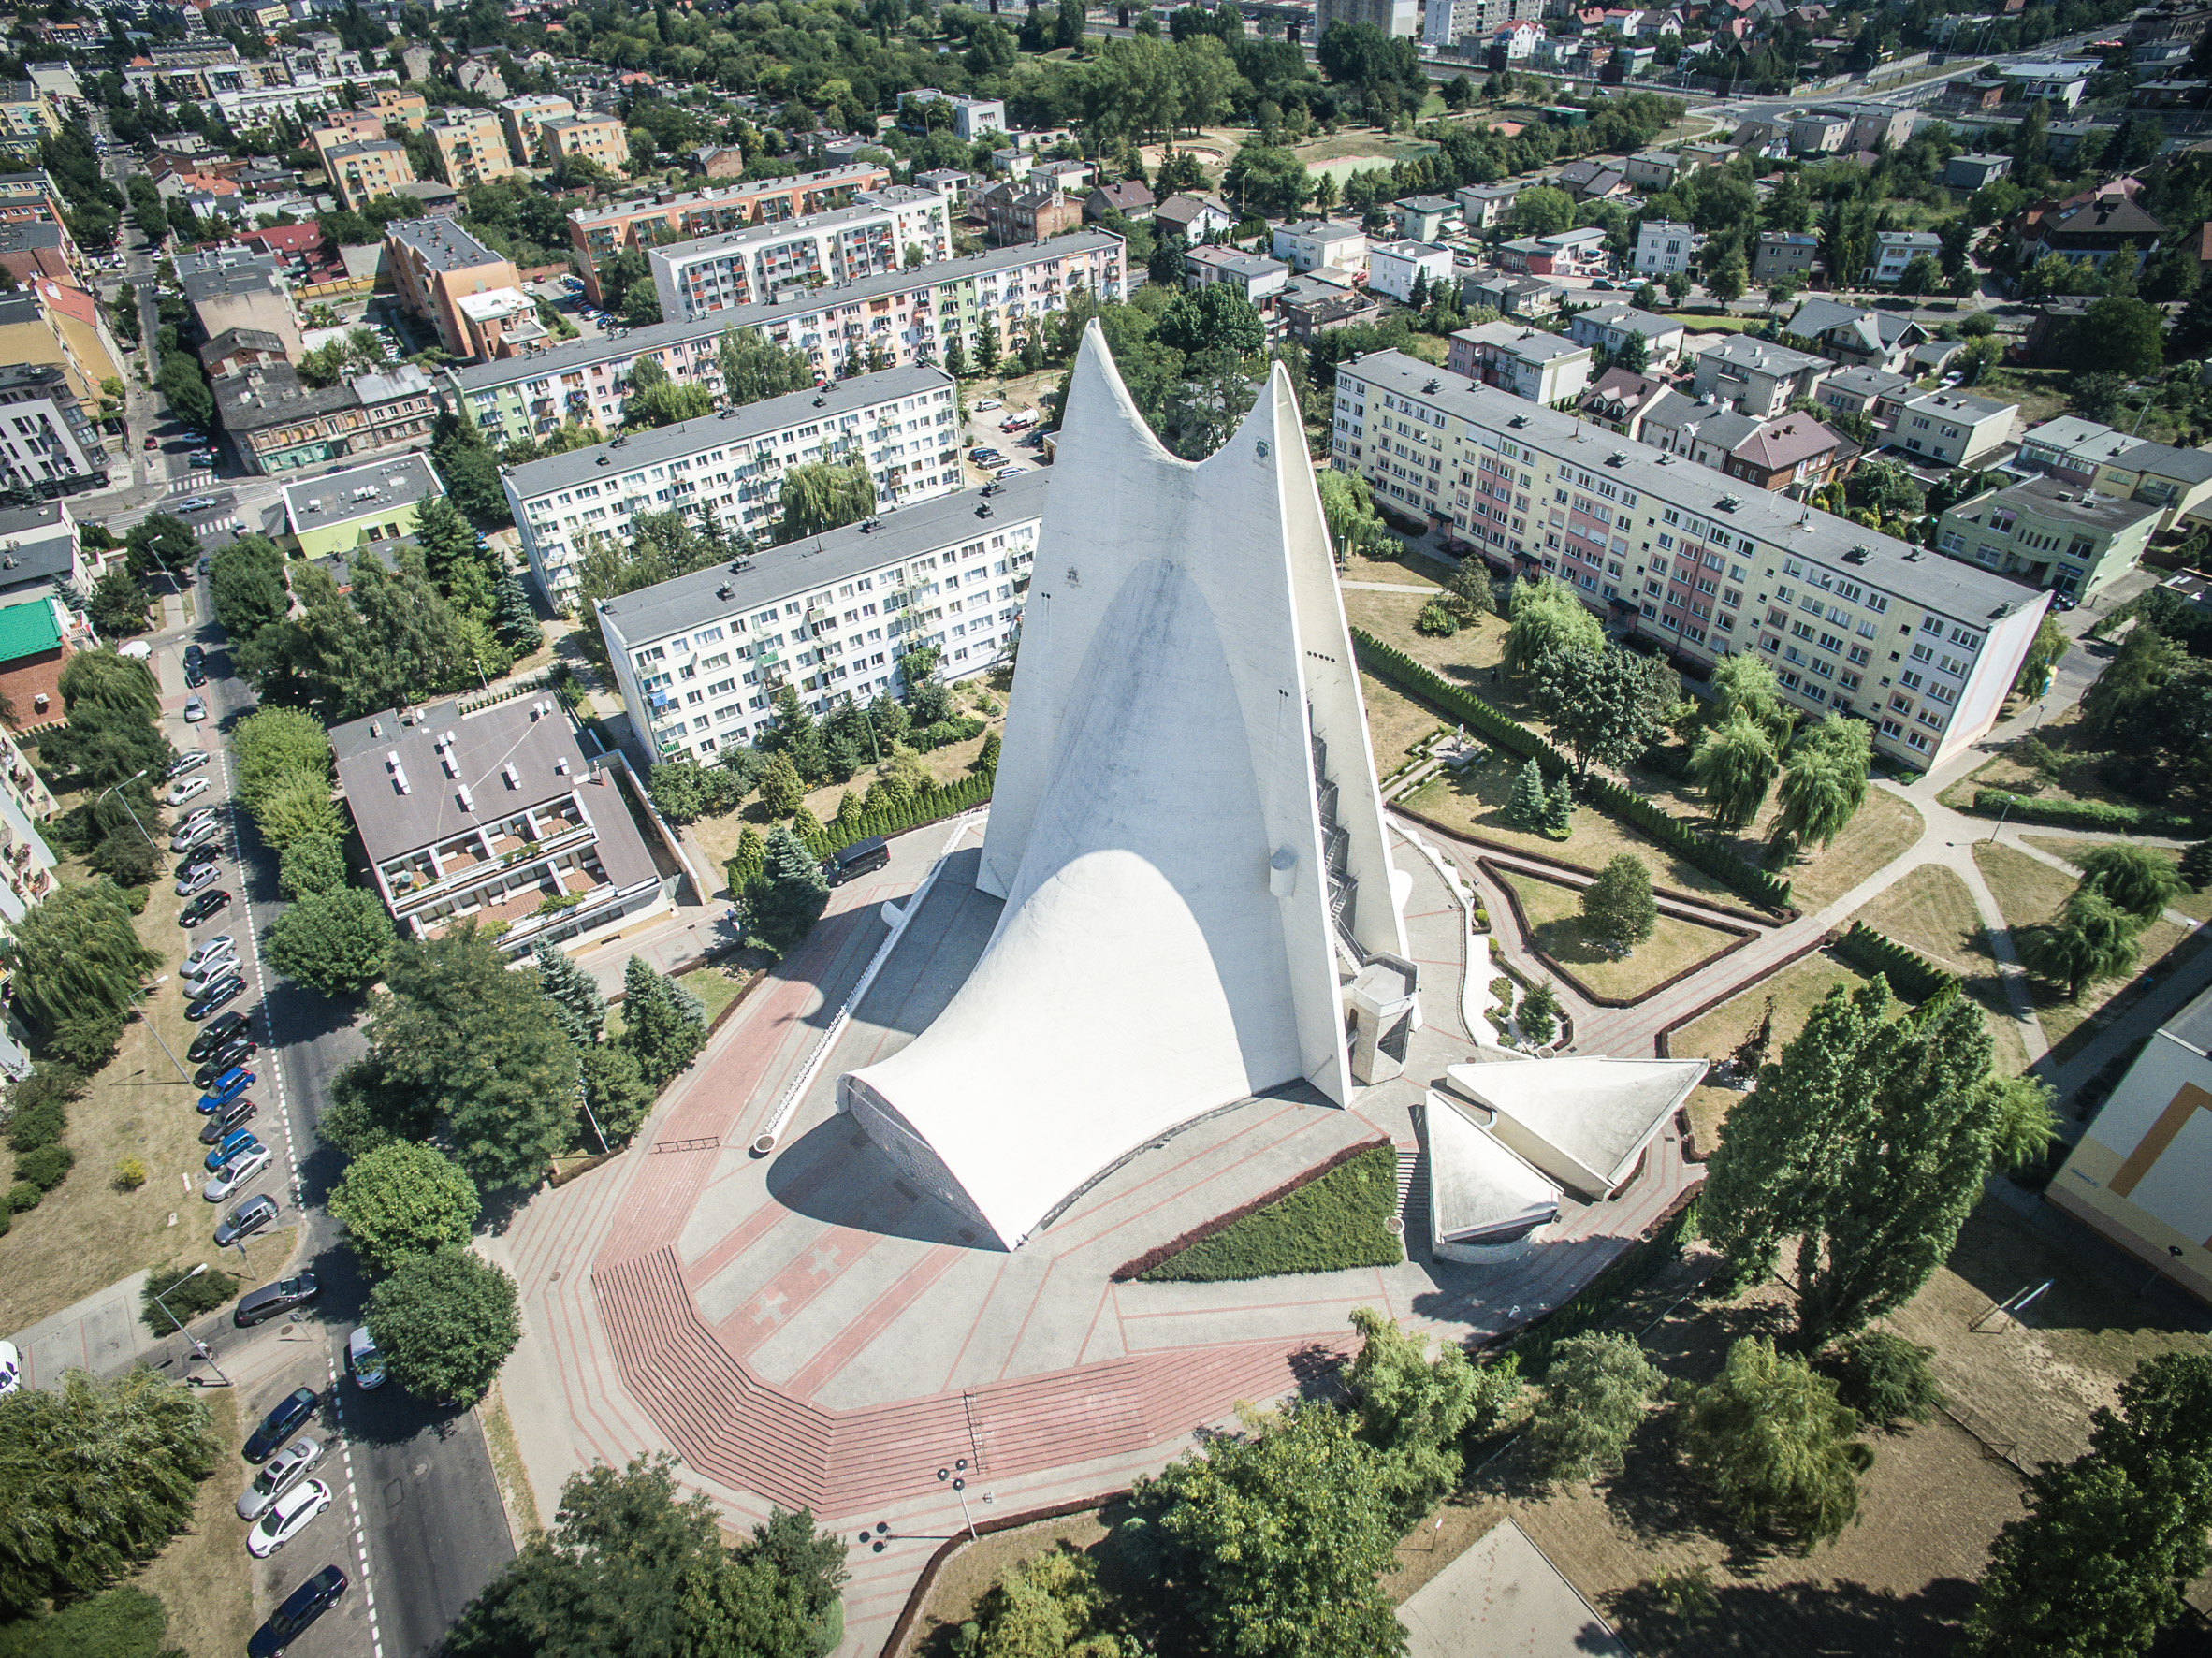 Day-VII Architecture A Catalogue of Polish Churches post 1945